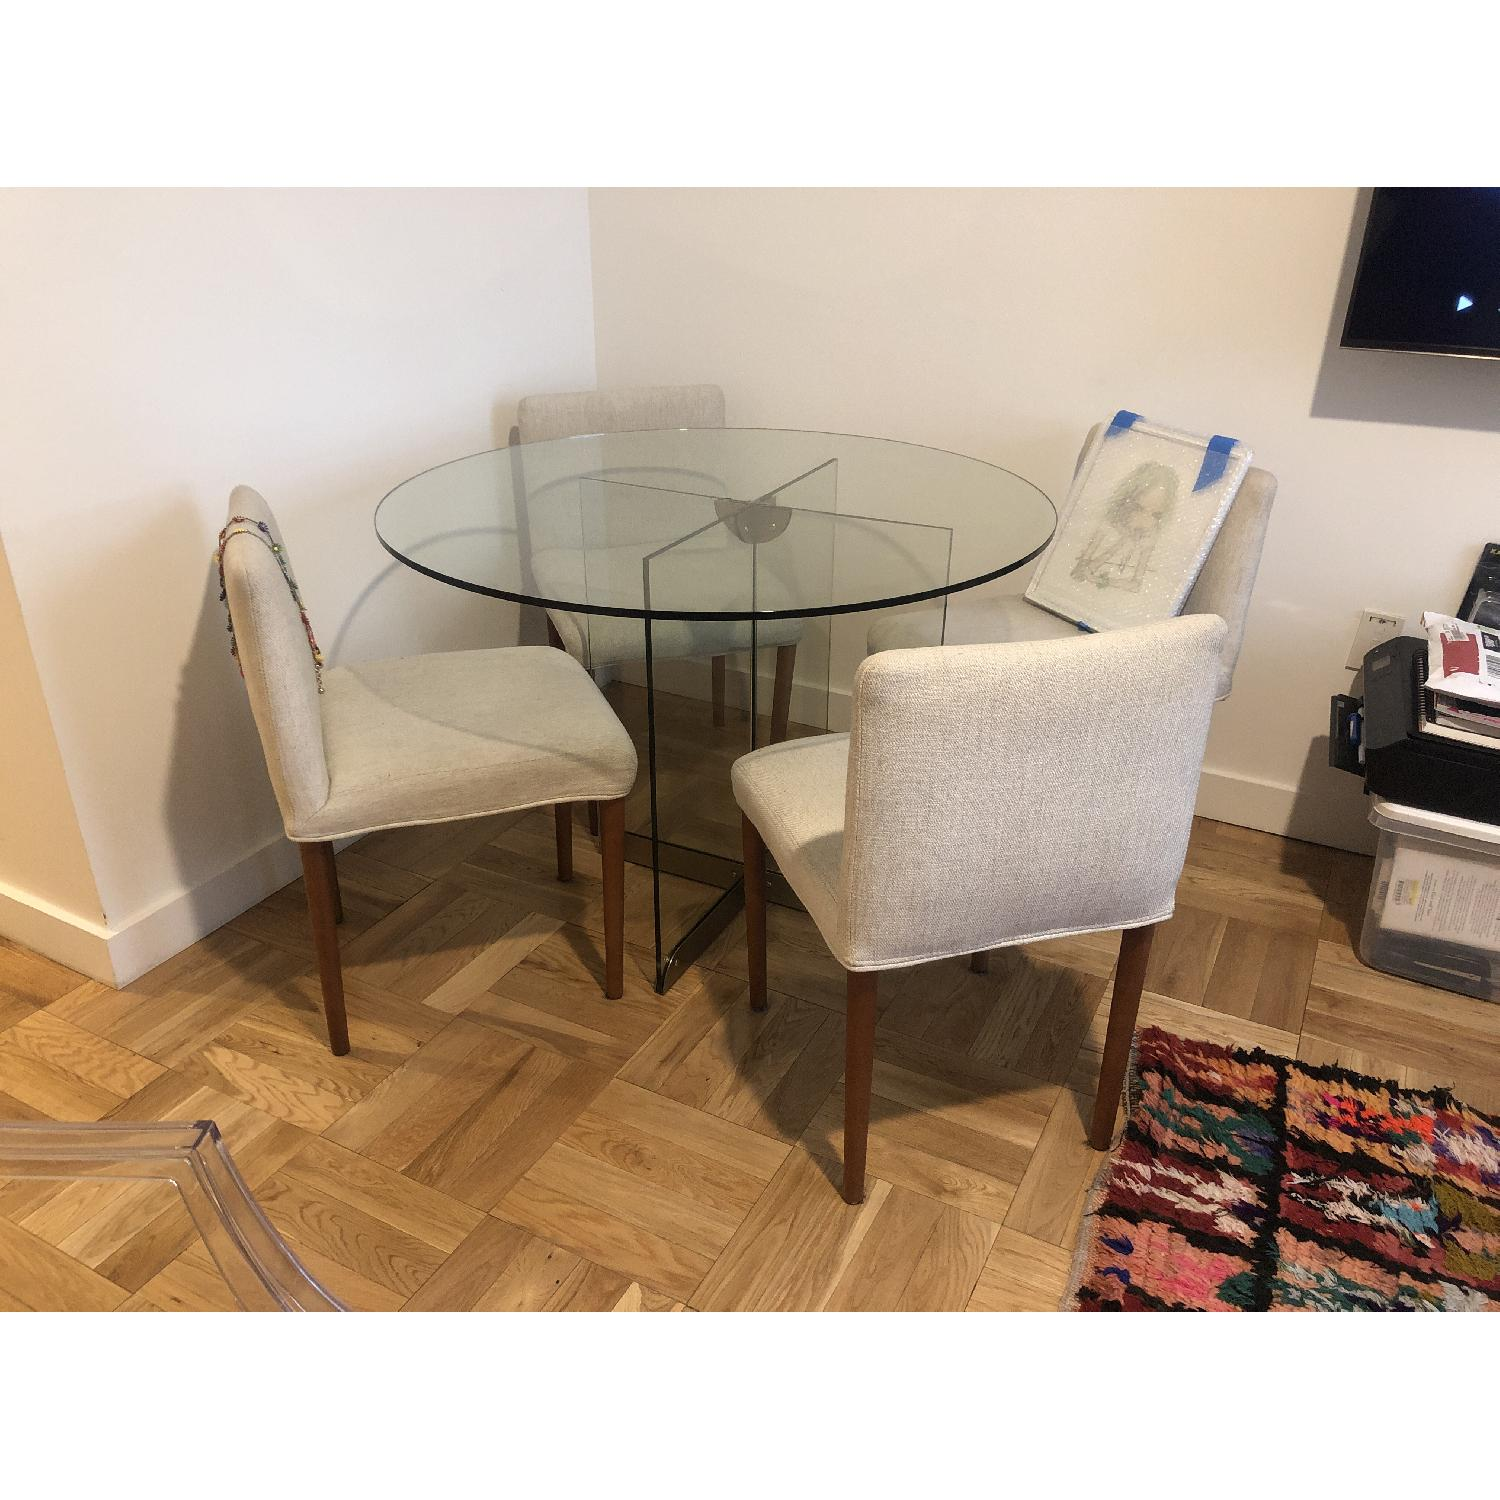 West Elm Glass Dining Table w/ 4 Wood & Fabric Chairs - image-3